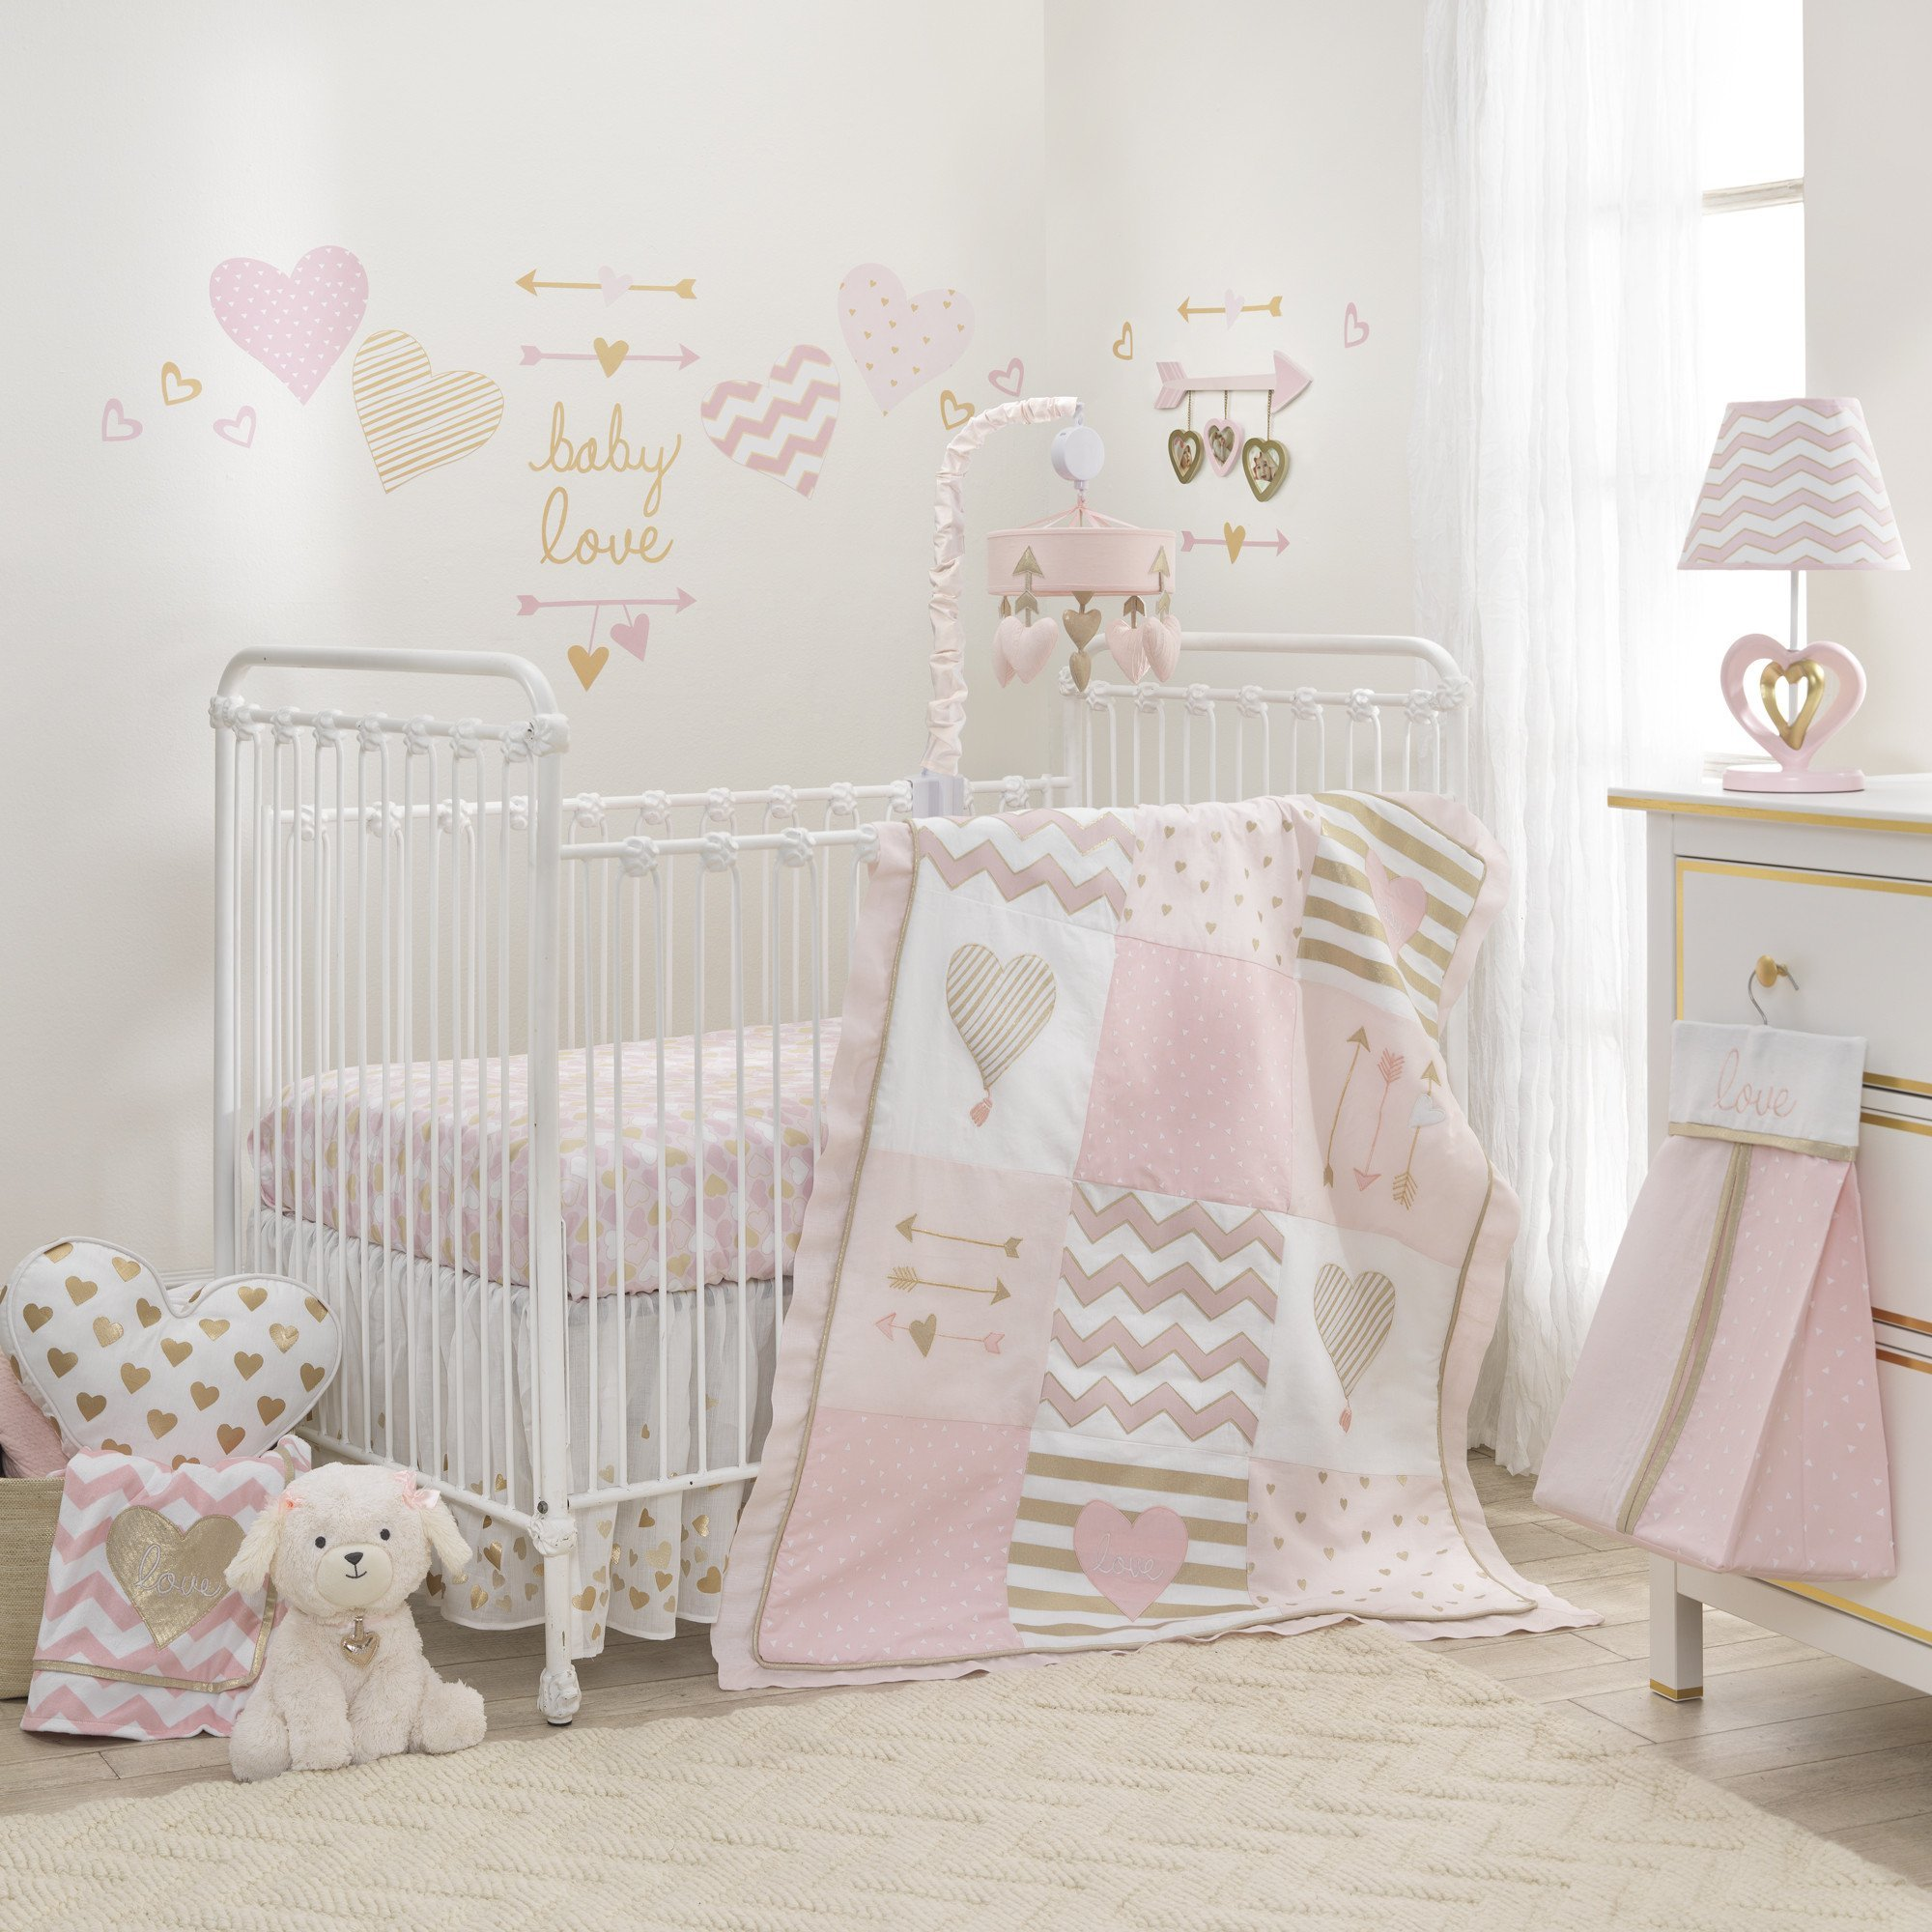 Lambs & Ivy Baby Love 7-Piece Baby Crib Bedding Set - Pink and Gold with Hearts